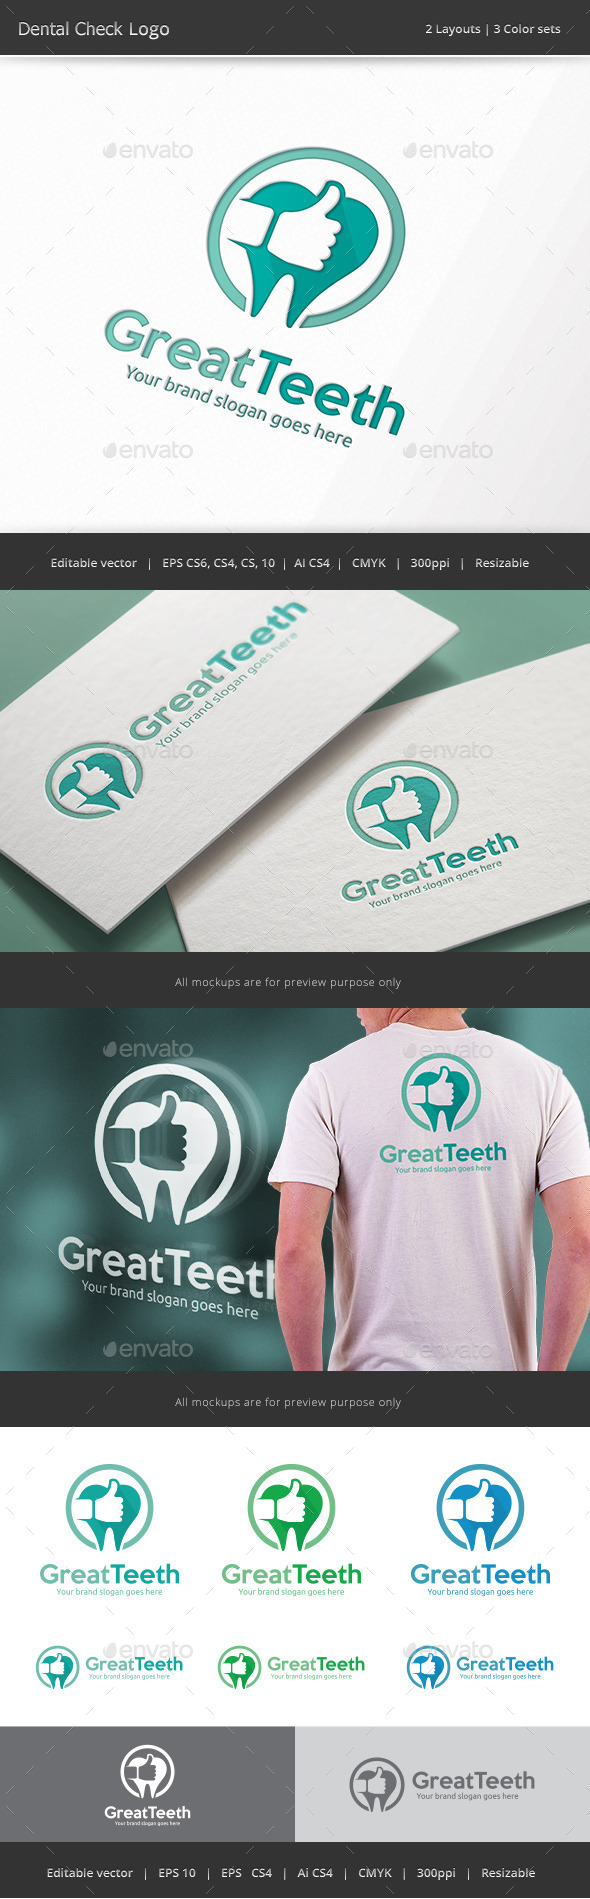 Great Teeth Dental Logo - Abstract Logo Templates